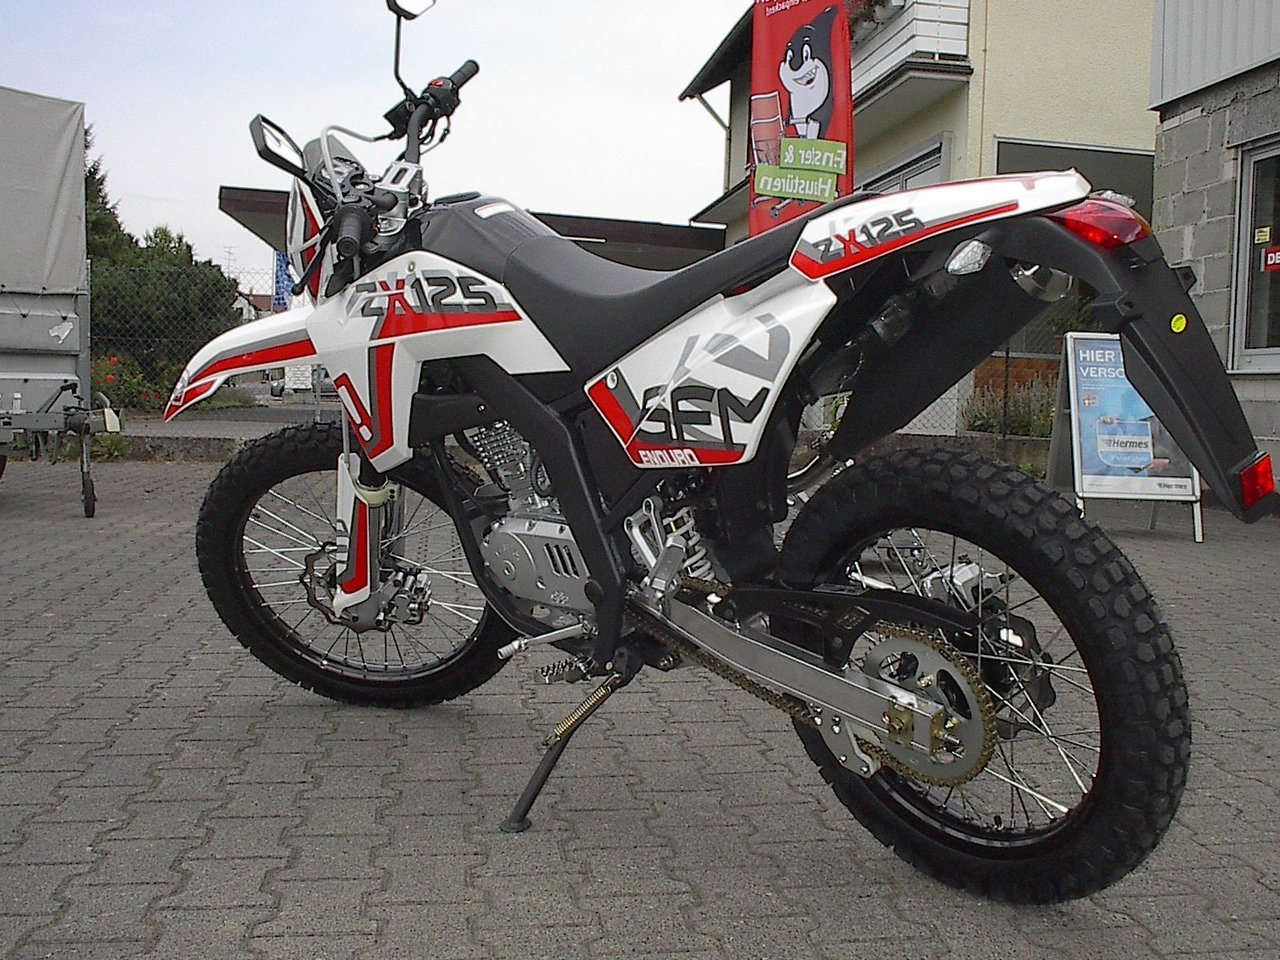 Sachs ZZ 125 2000 images #145443